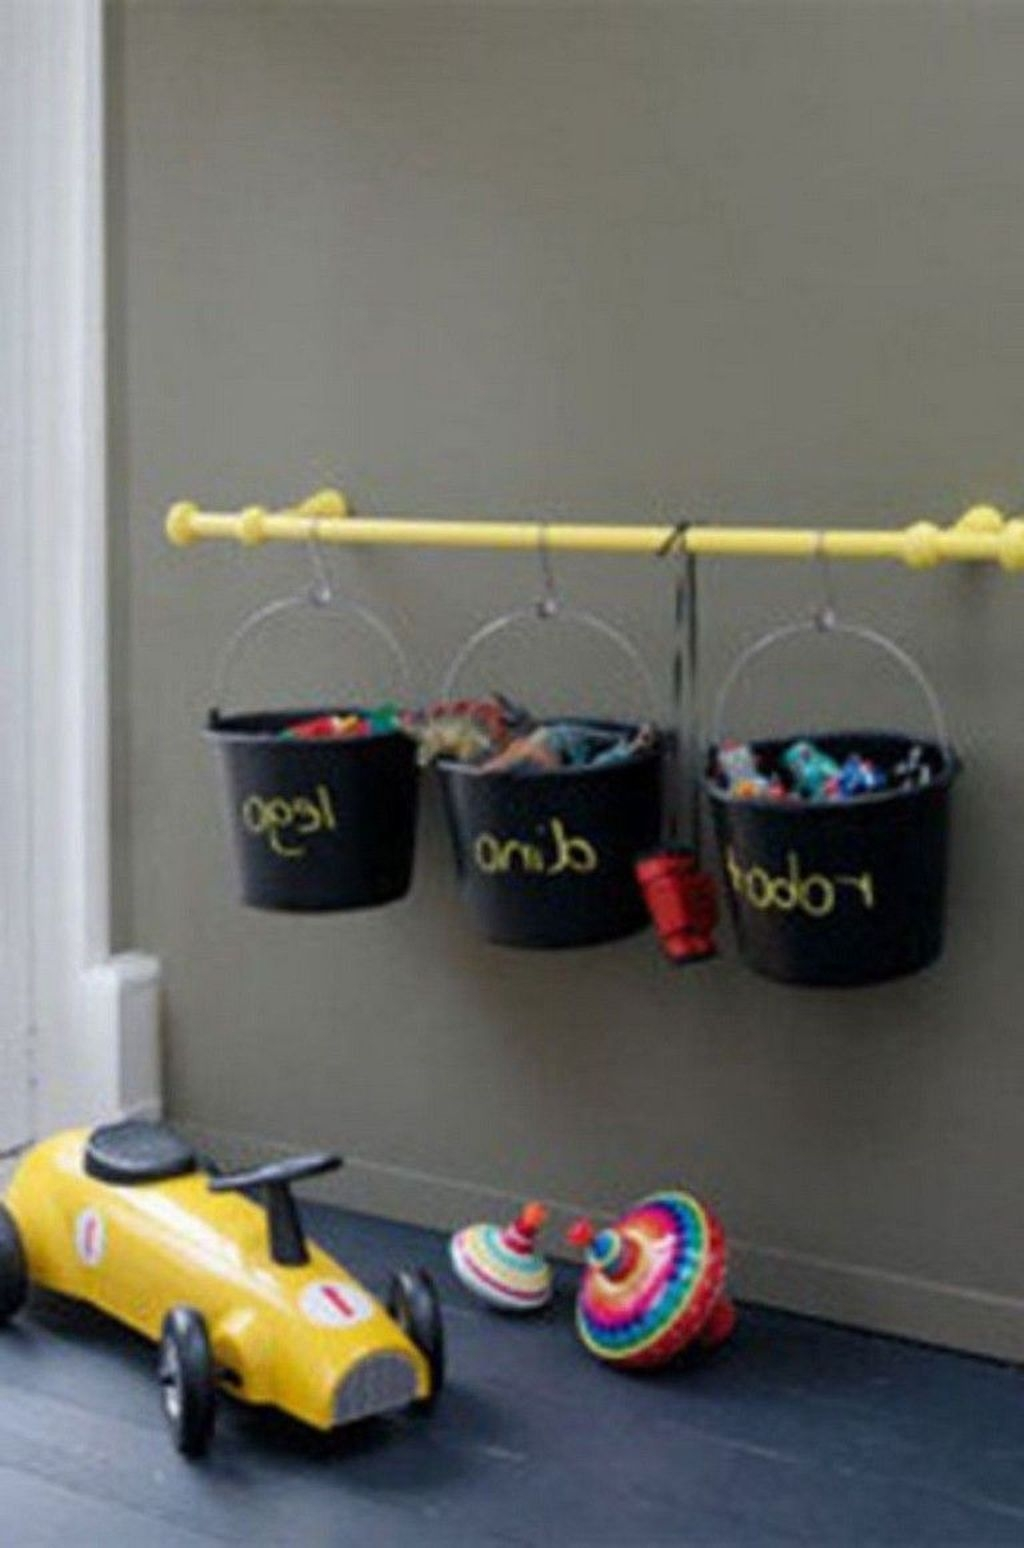 Luxury Toys Storage Organization Ideas36